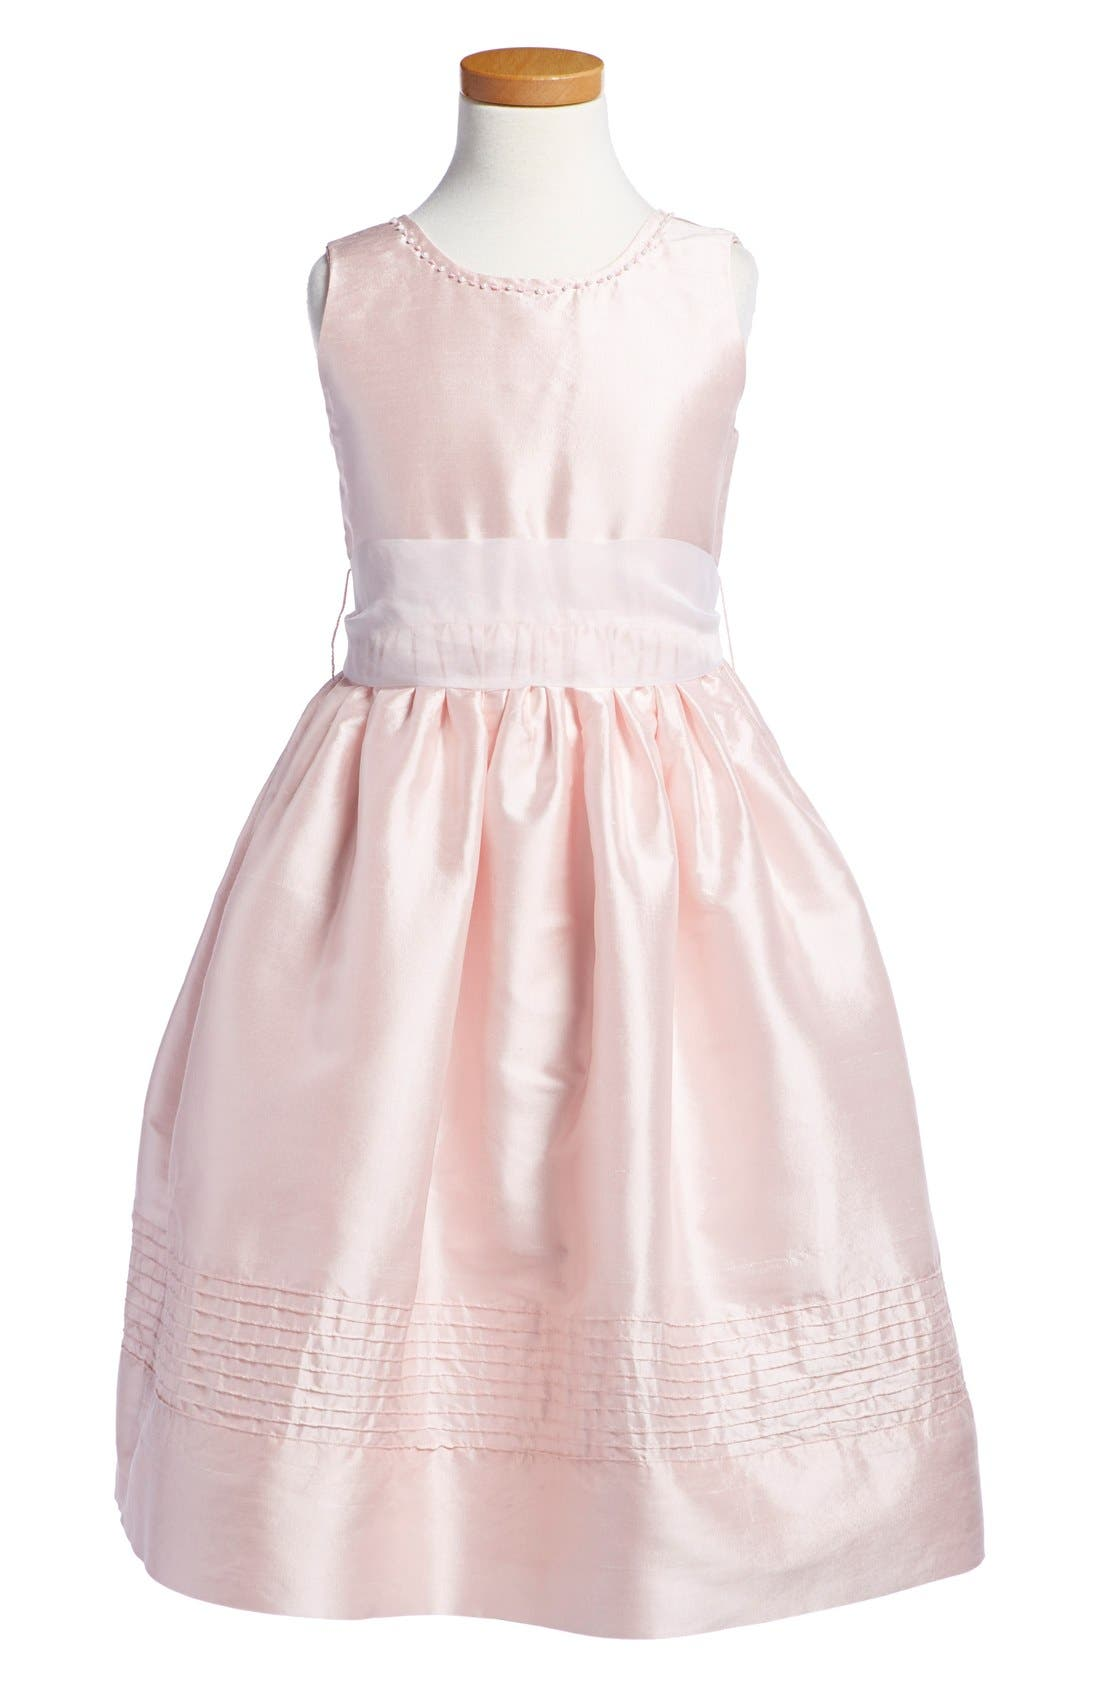 Isabel Garreton 'Melody' Sleeveless Dress (Toddler Girls)